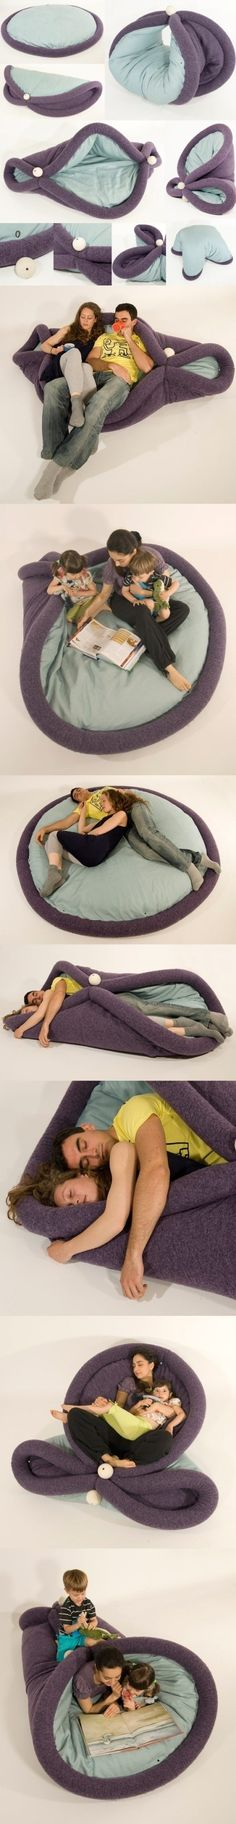 Blandito pillow. Want.